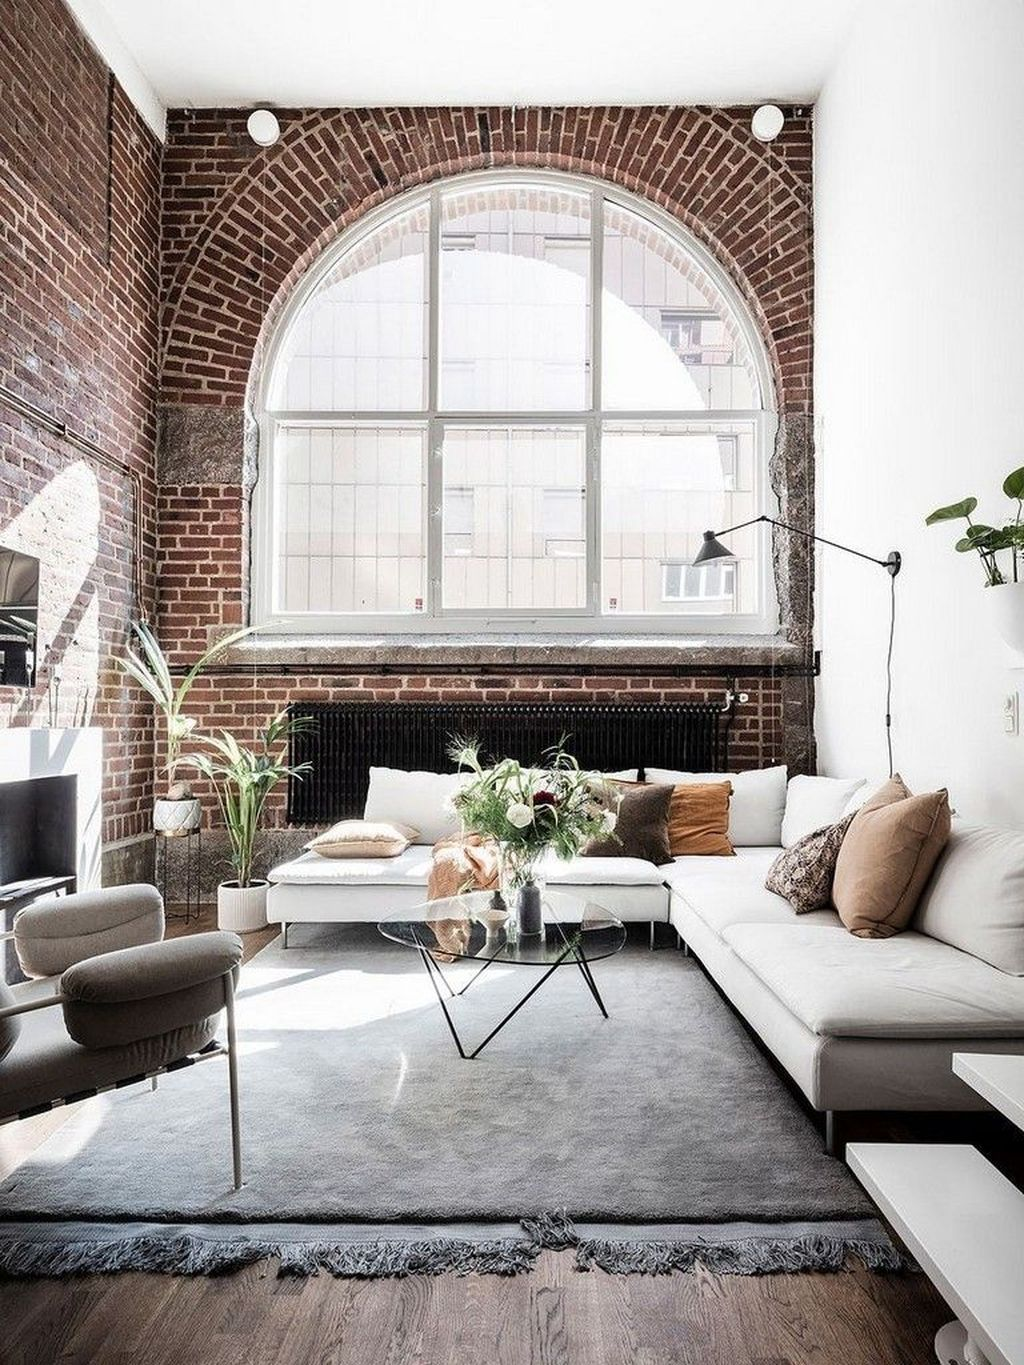 Stunning Interior Design Ideas You Should Try 19